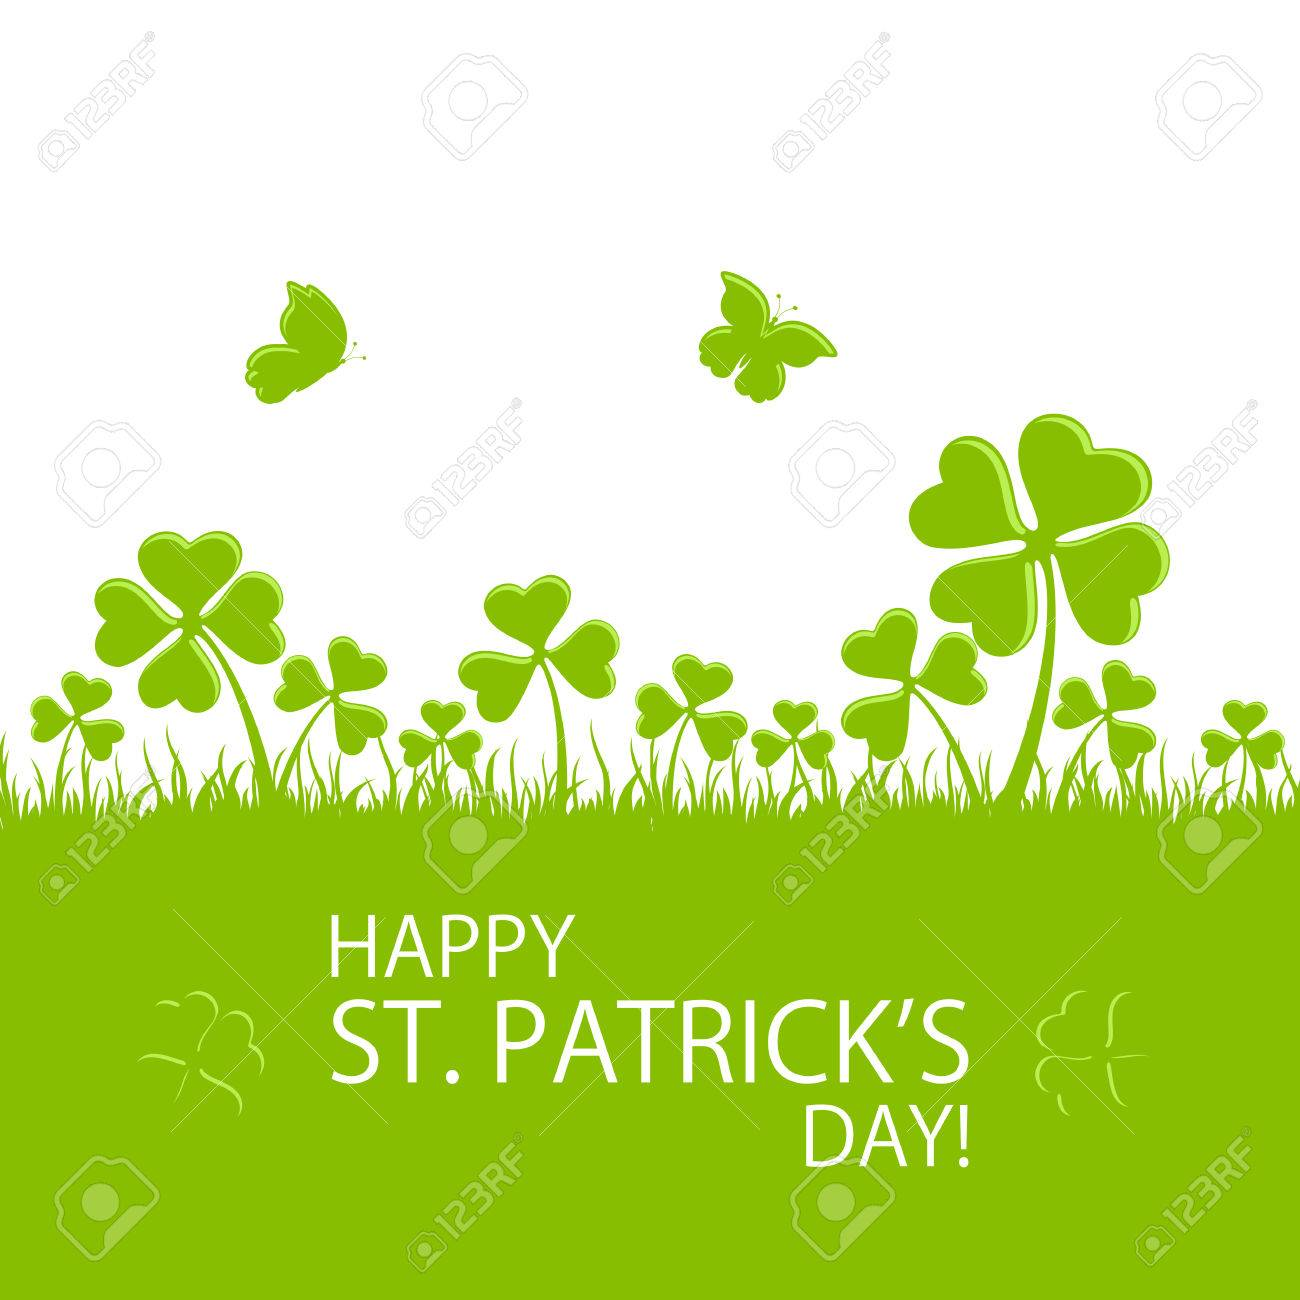 St. Patrick's Day green background with clovers in grass and flying butterfly, illustration. - 53289169